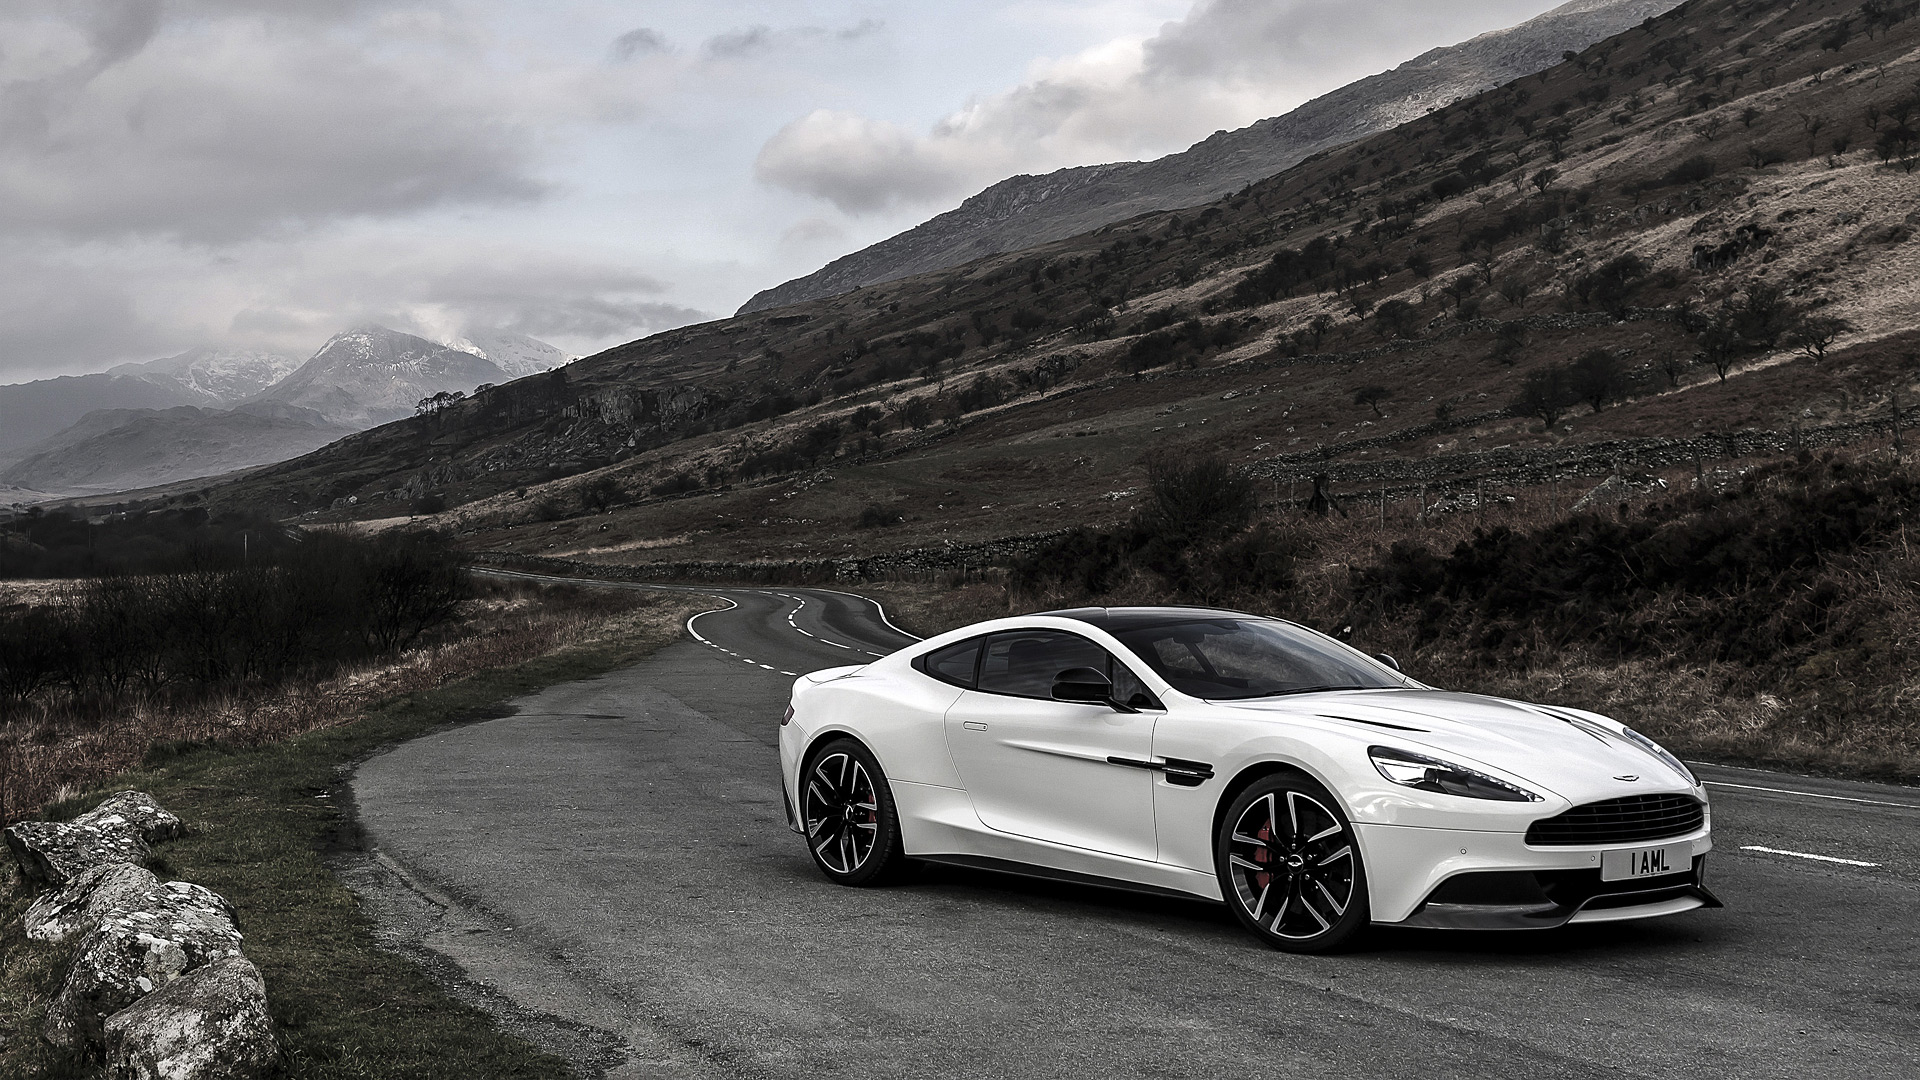 2015 Aston Martin Vanquish Carbon Edition Wallpapers HD Images 1920x1080